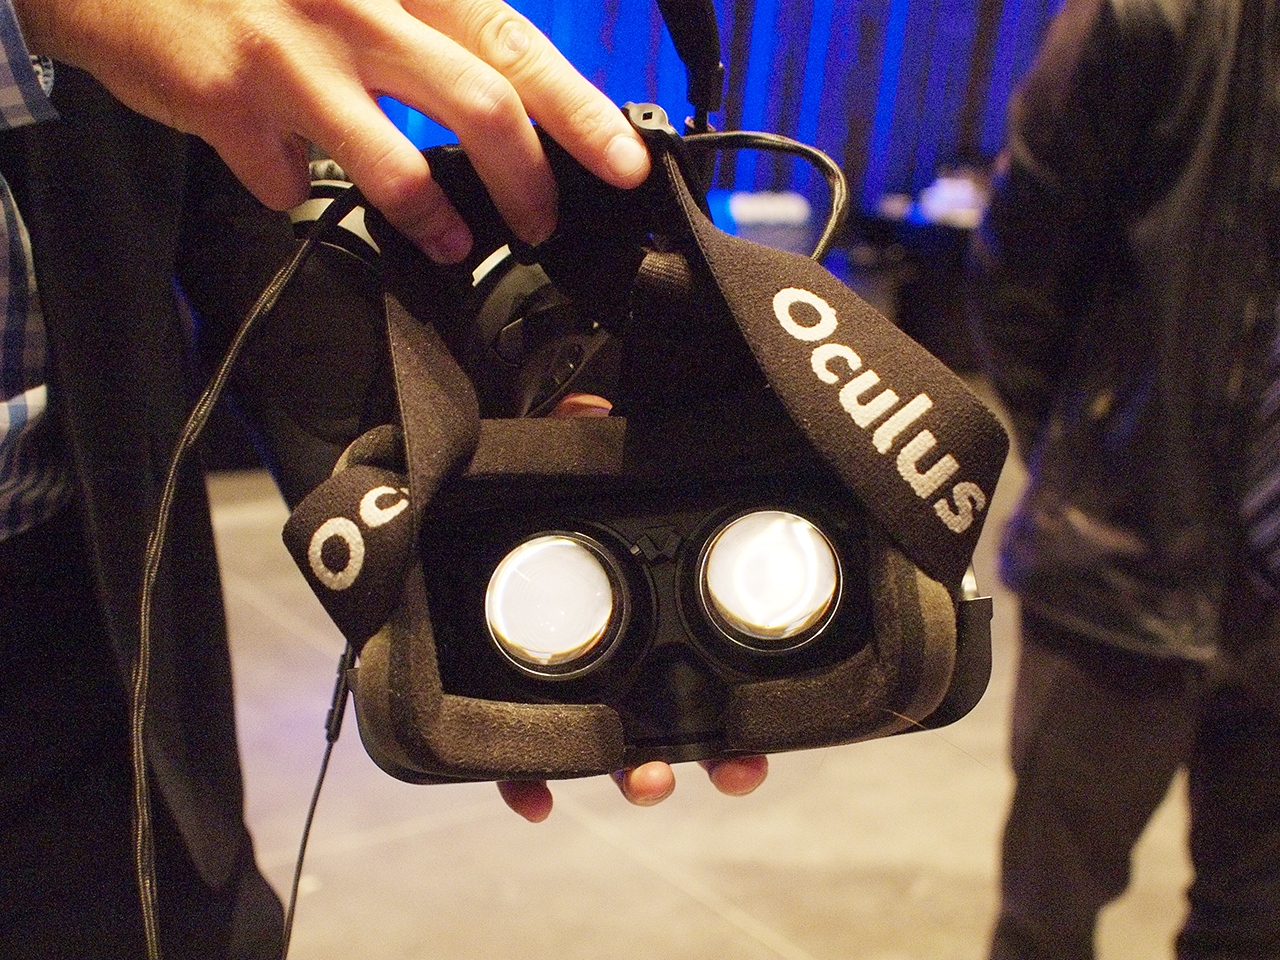 inside of VR goggles